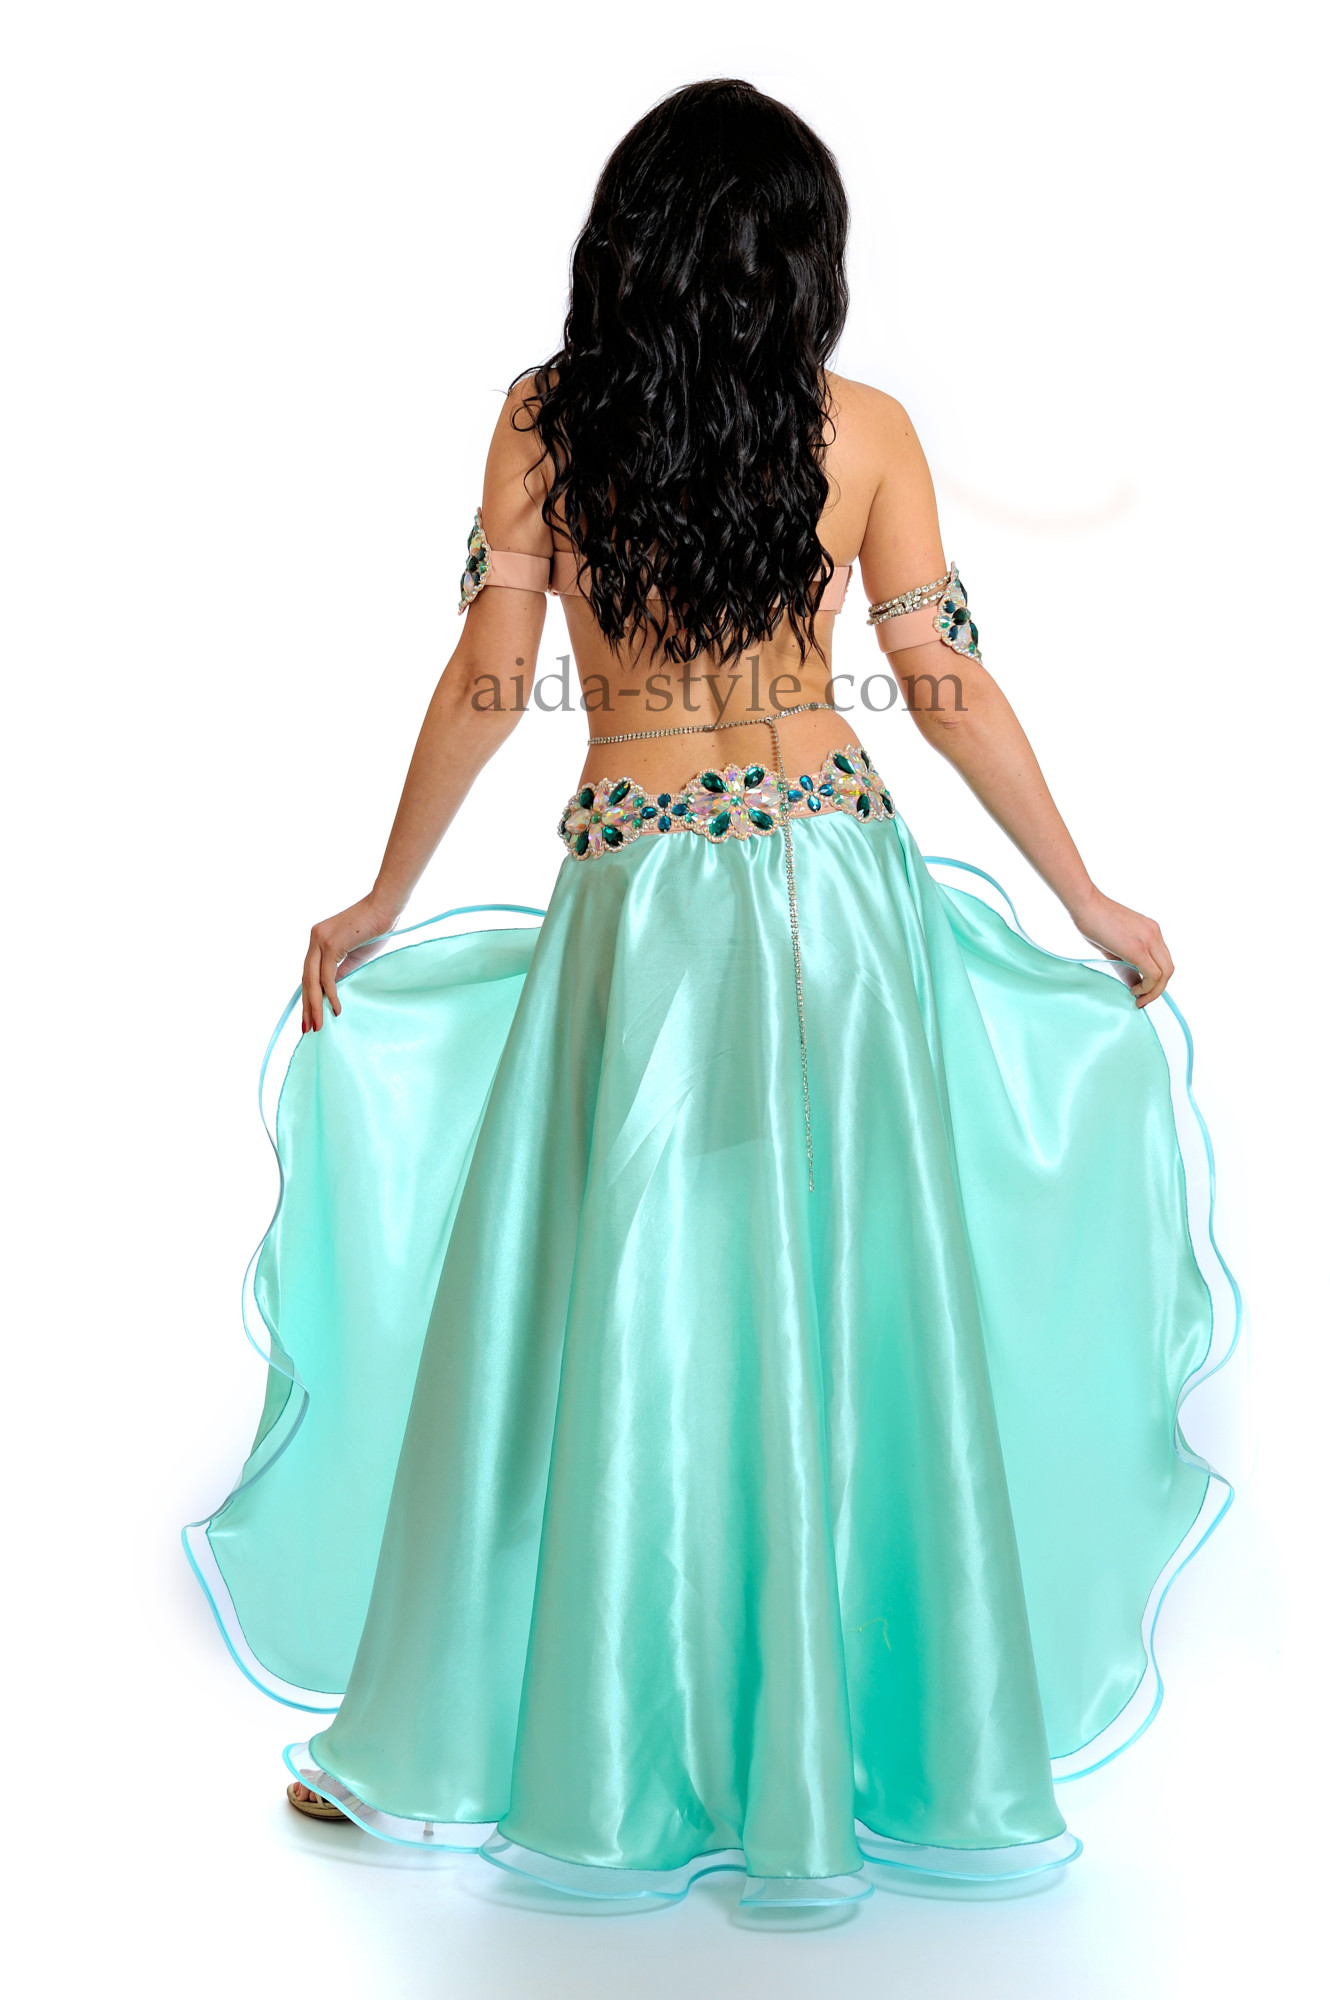 Professional belly dance costume in azure-blue color with bra and belt decorated with blue stones. The skirt consist of a mini-skirt and floor-length second level